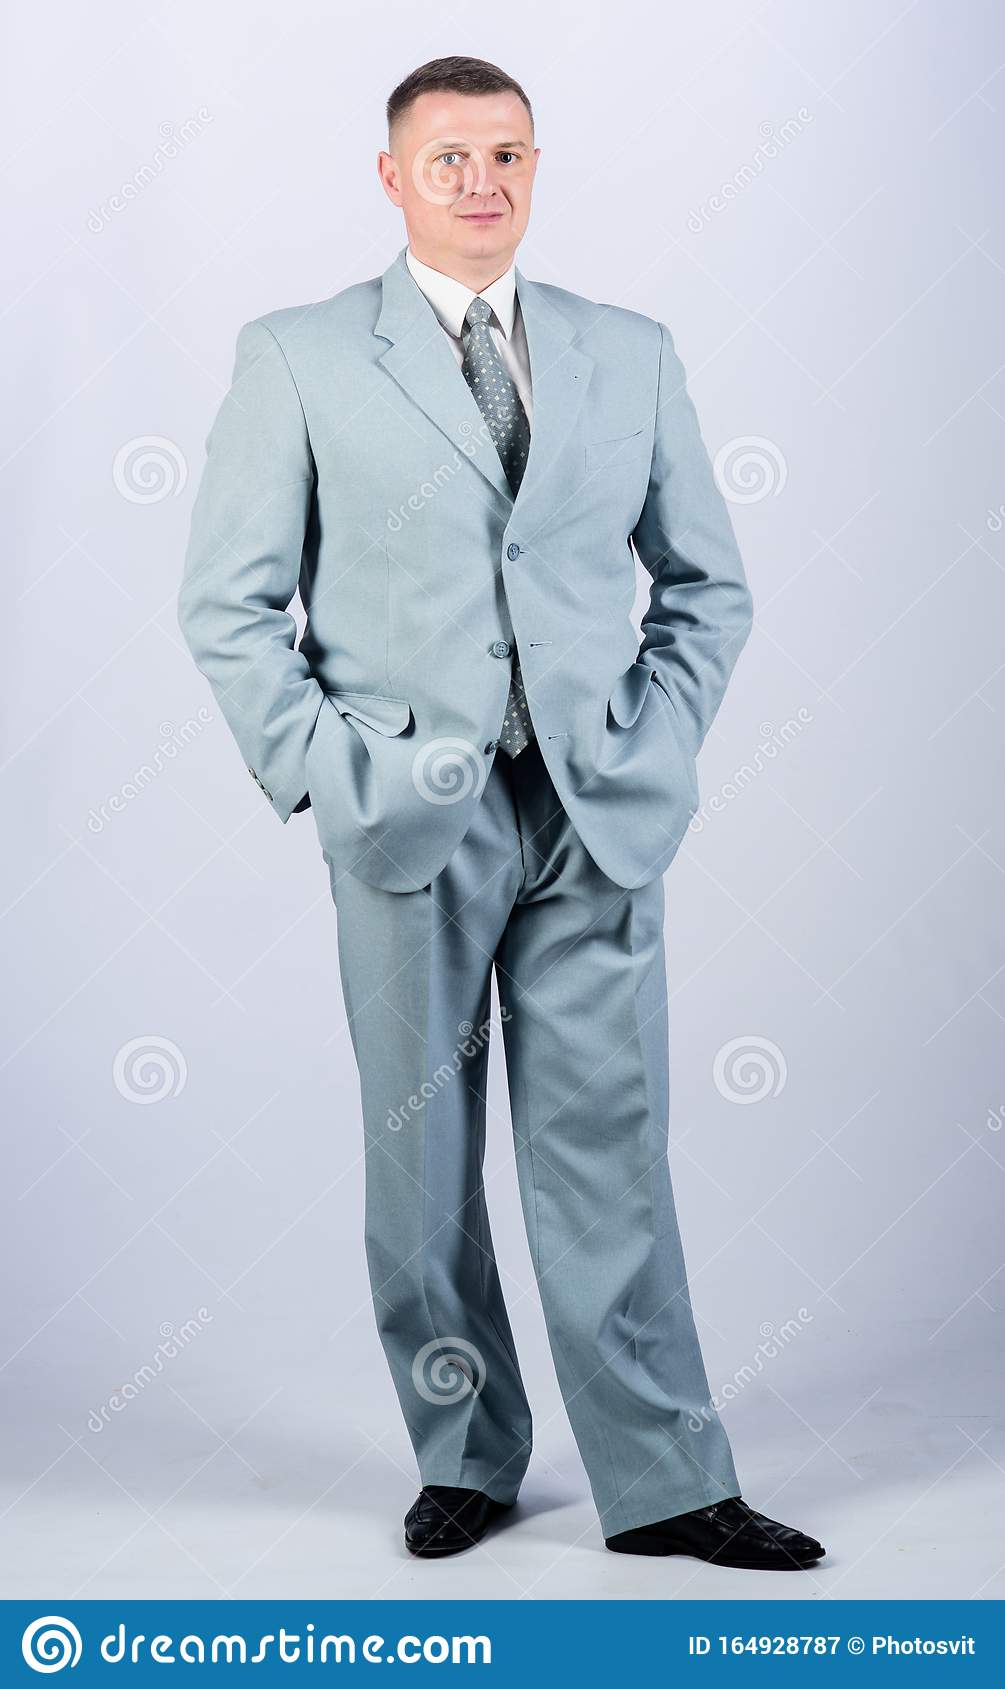 Wedding Fashion Man Well Groomed Elegant Caucasian Appearance Wear Formal Clothes Male Fashion Store Businessman Stock Image Image Of Confident Employer 164928787,Second Marriage Older Brides Wedding Dresses For Over 50 Brides